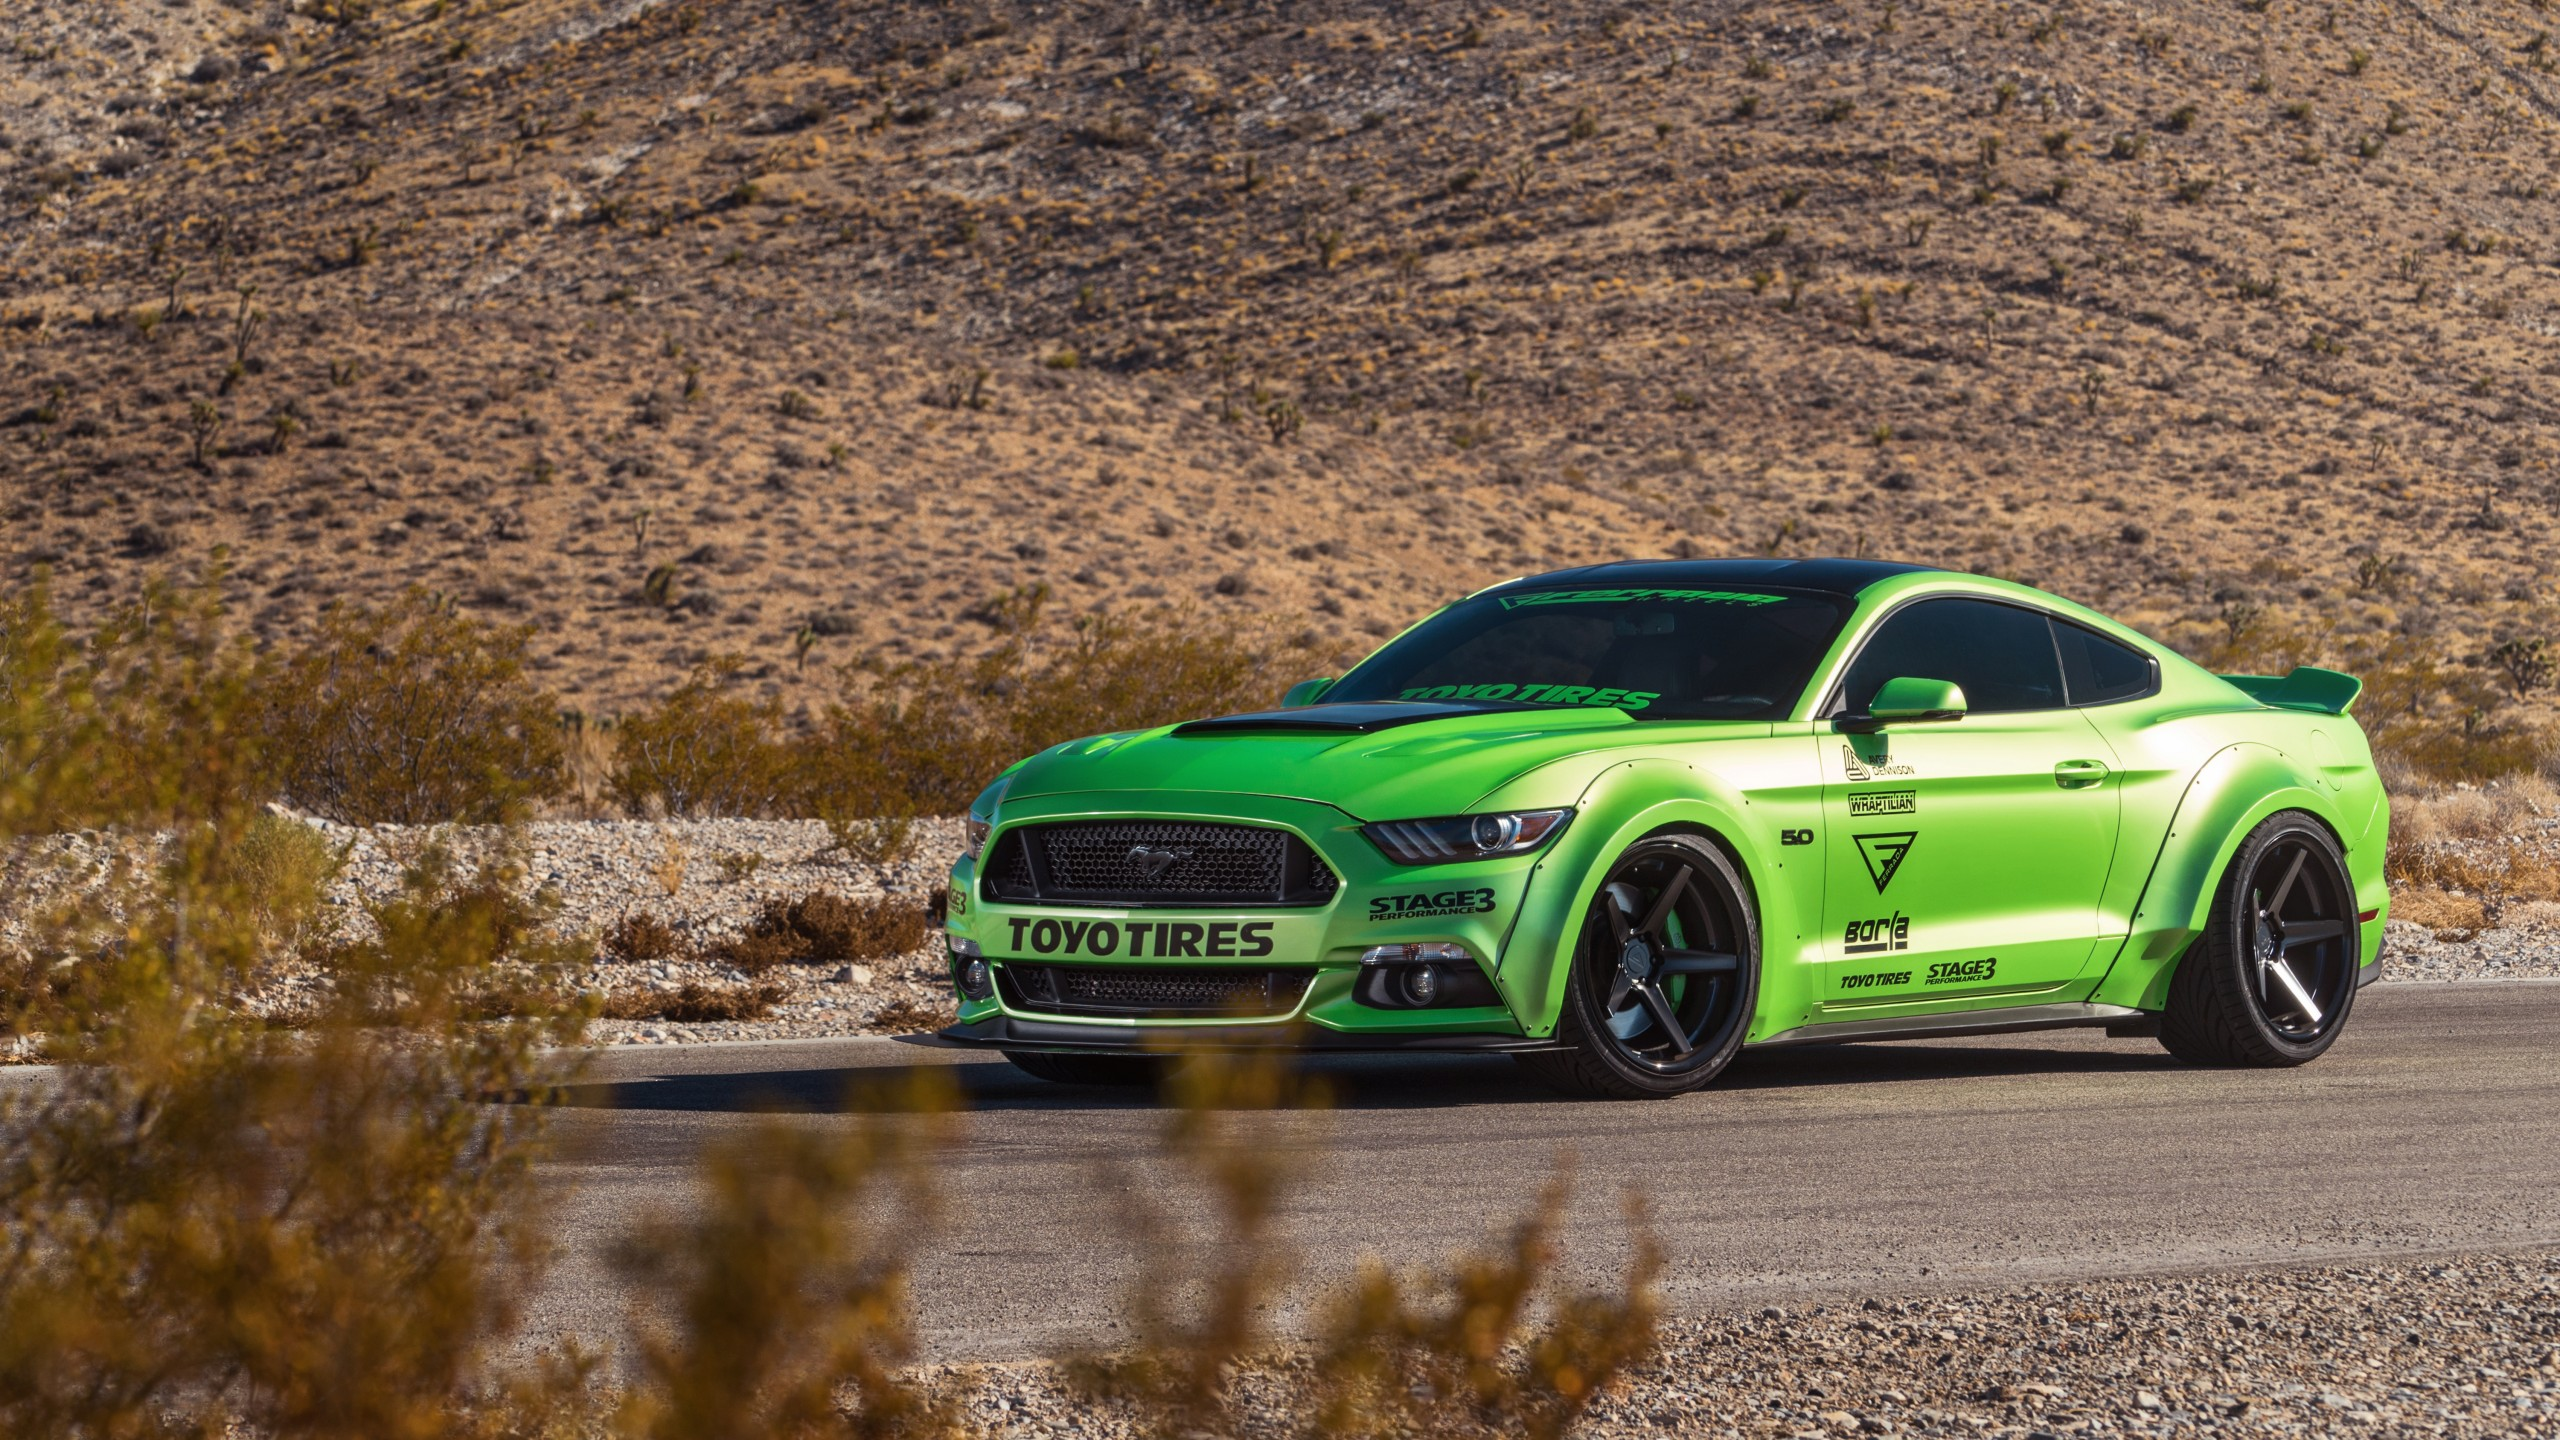 Green Ford Mustang Gt Ferrada Wheels 5k Wallpaper Hd Car